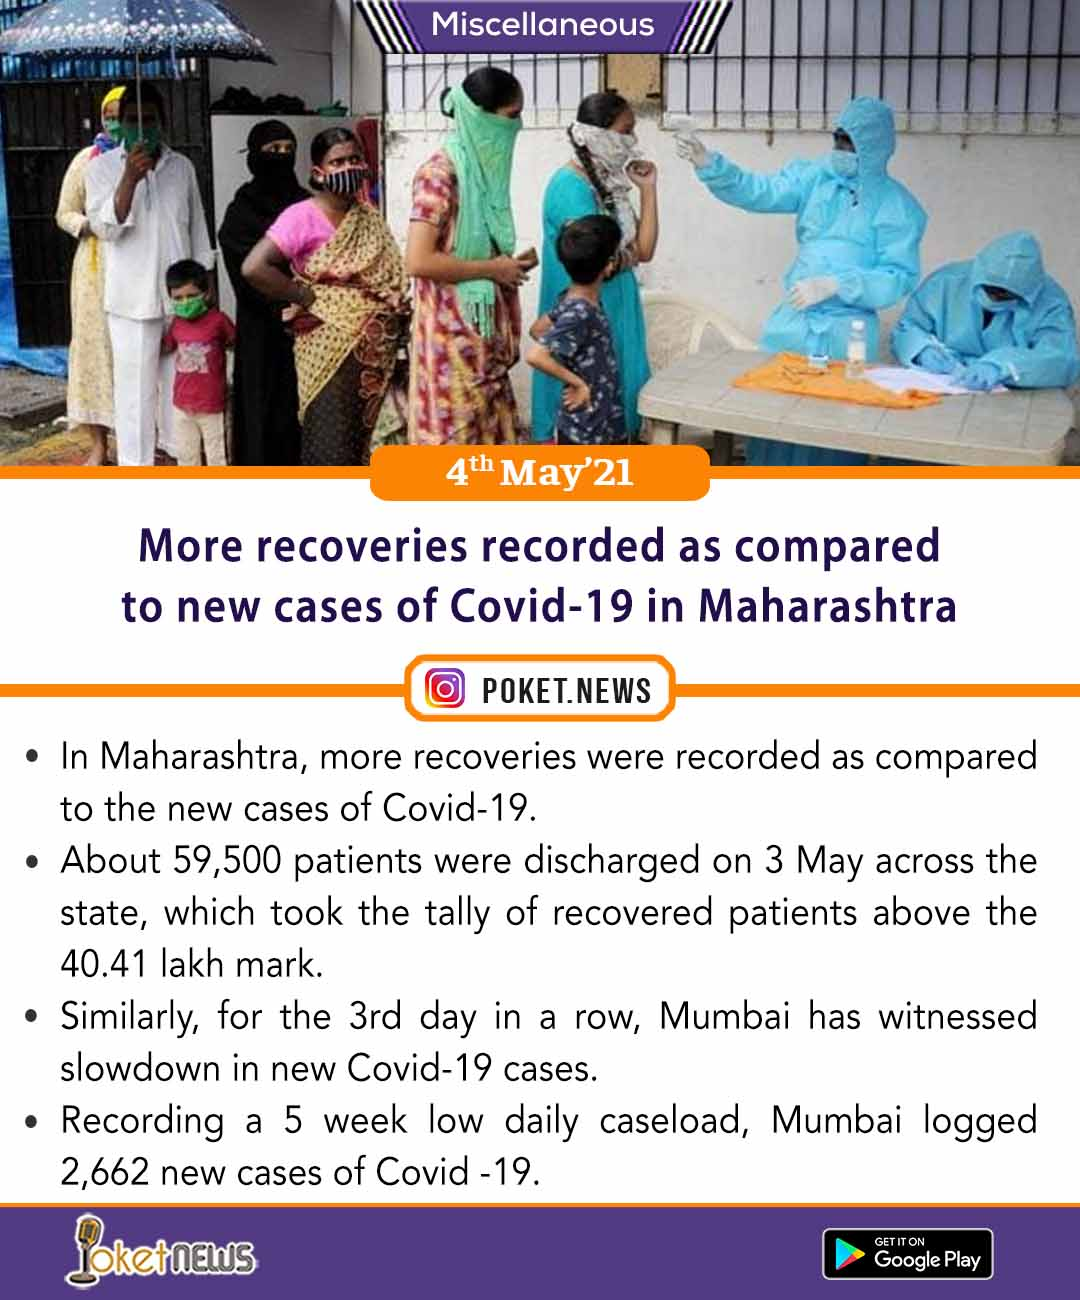 More recoveries recorded as compared to new cases of Covid-19 in Maharashtra